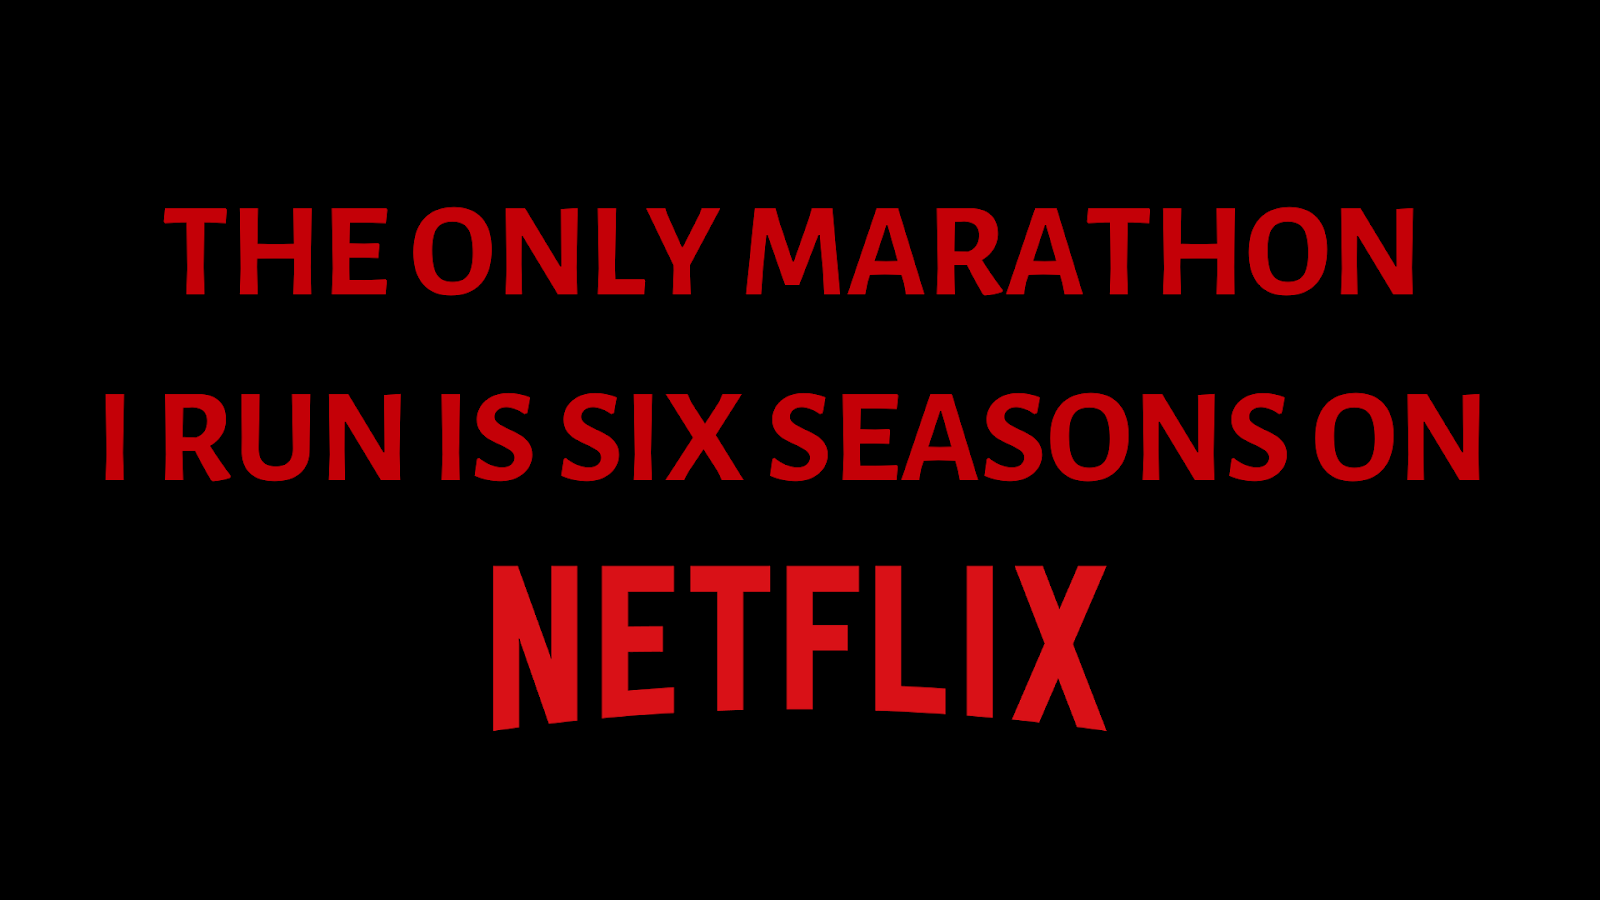 the only marathon i run is six seasons on netflix